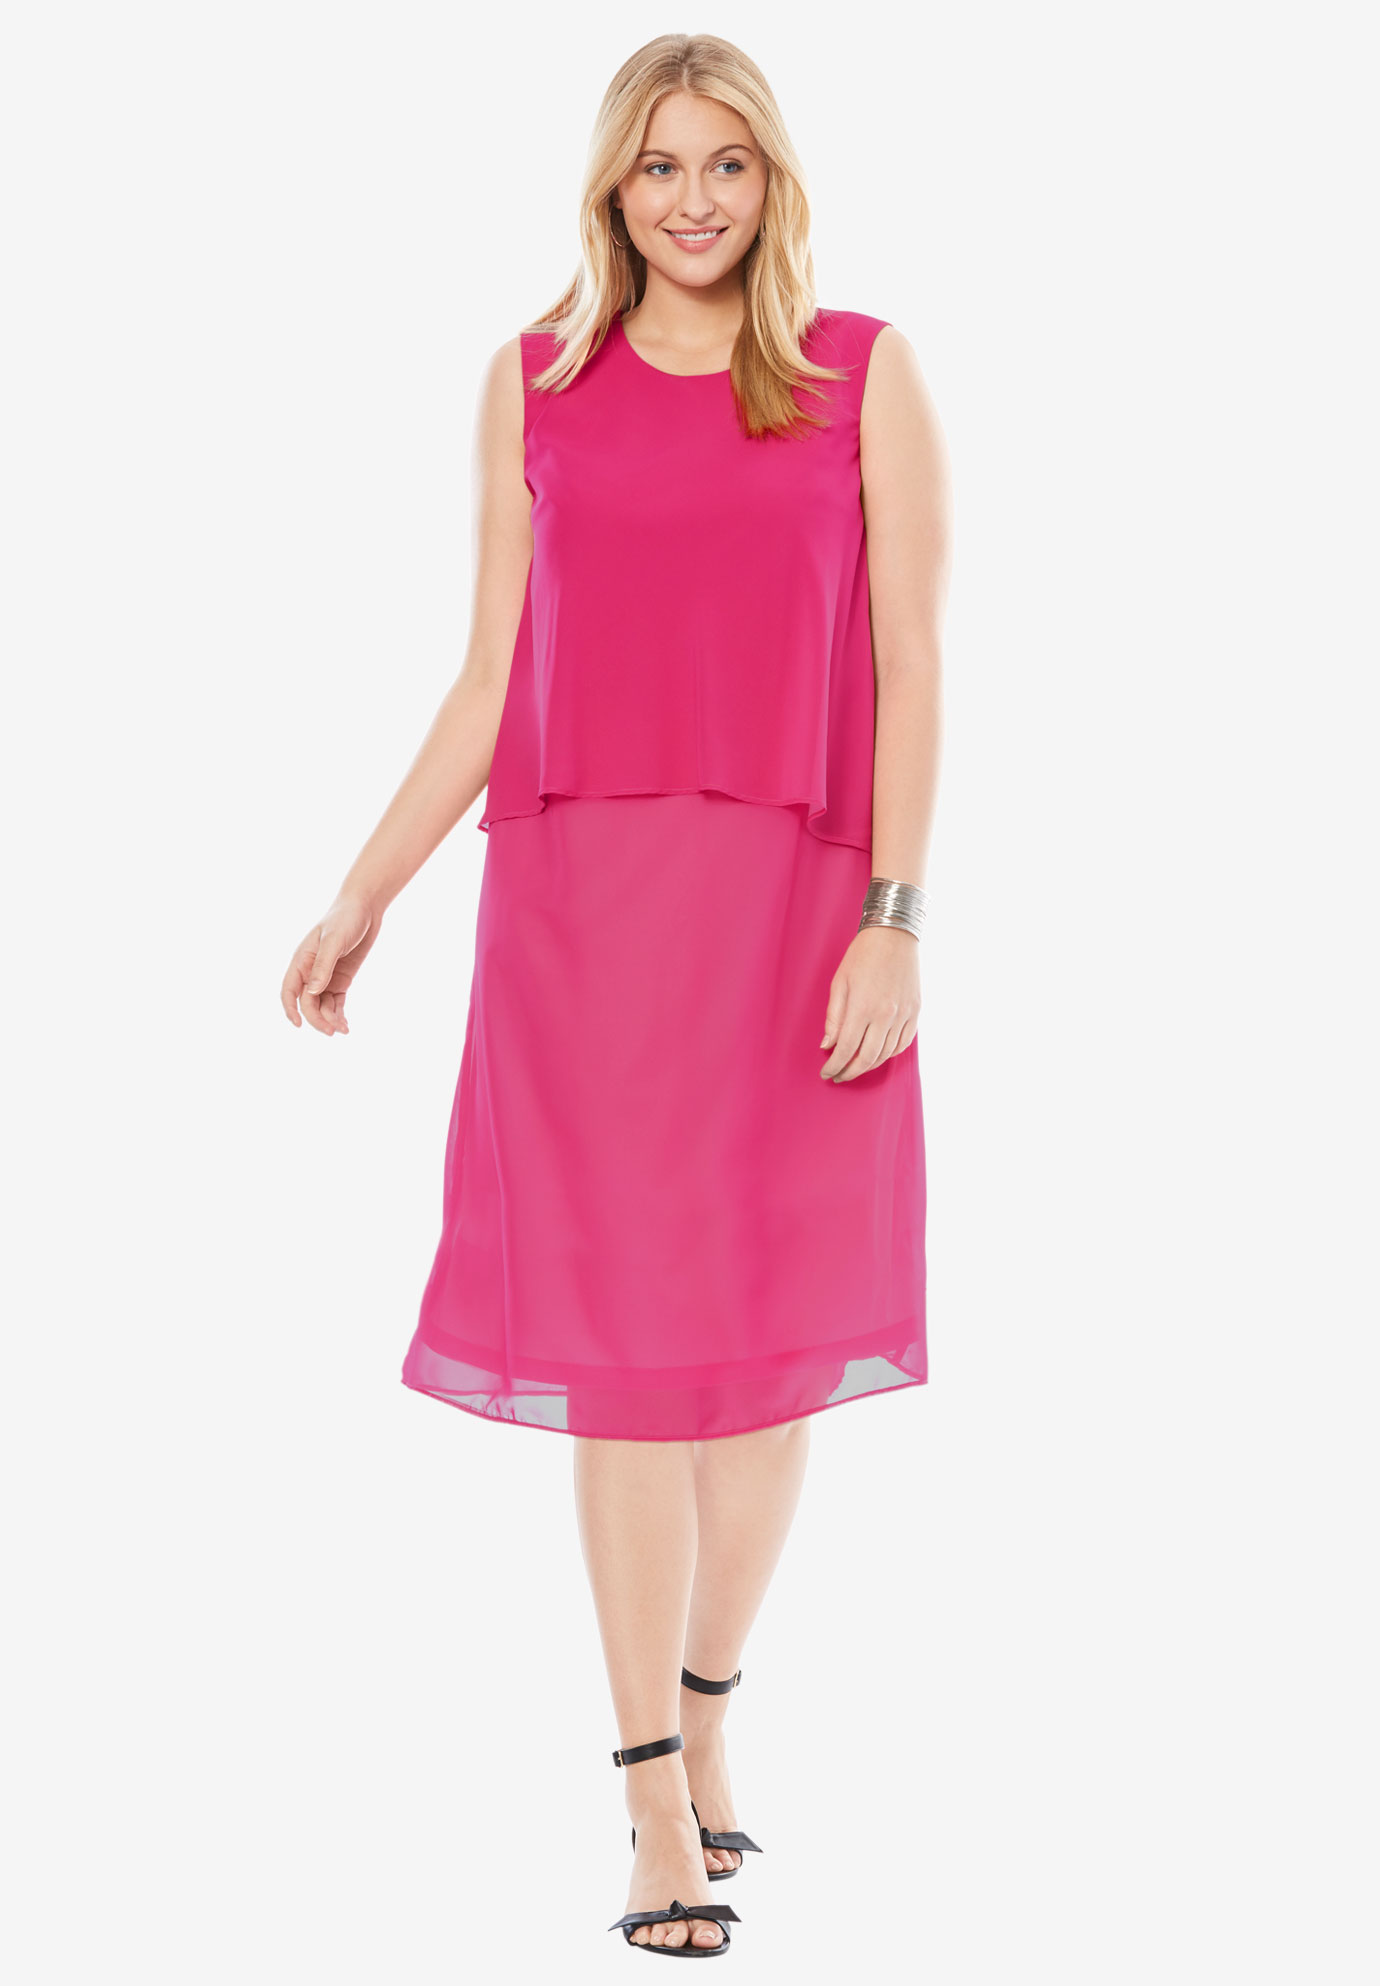 Scoopneck Overlay Dress, PASSION PINK, hi-res